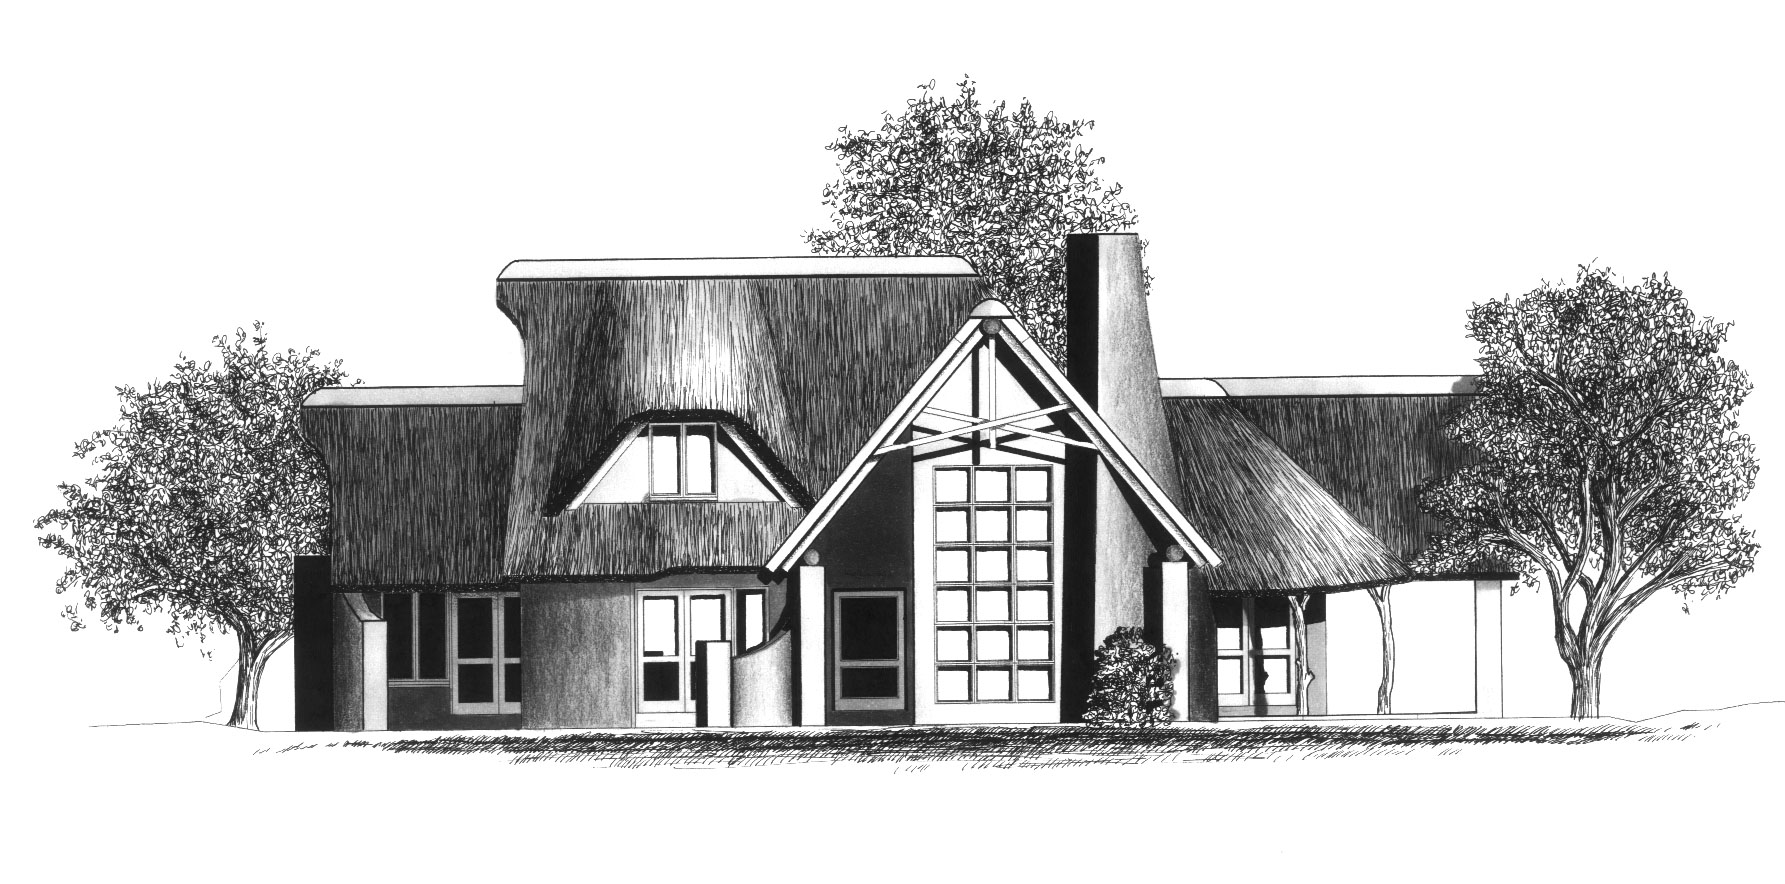 House plans and design modern house plans botswana for Thatched house plans